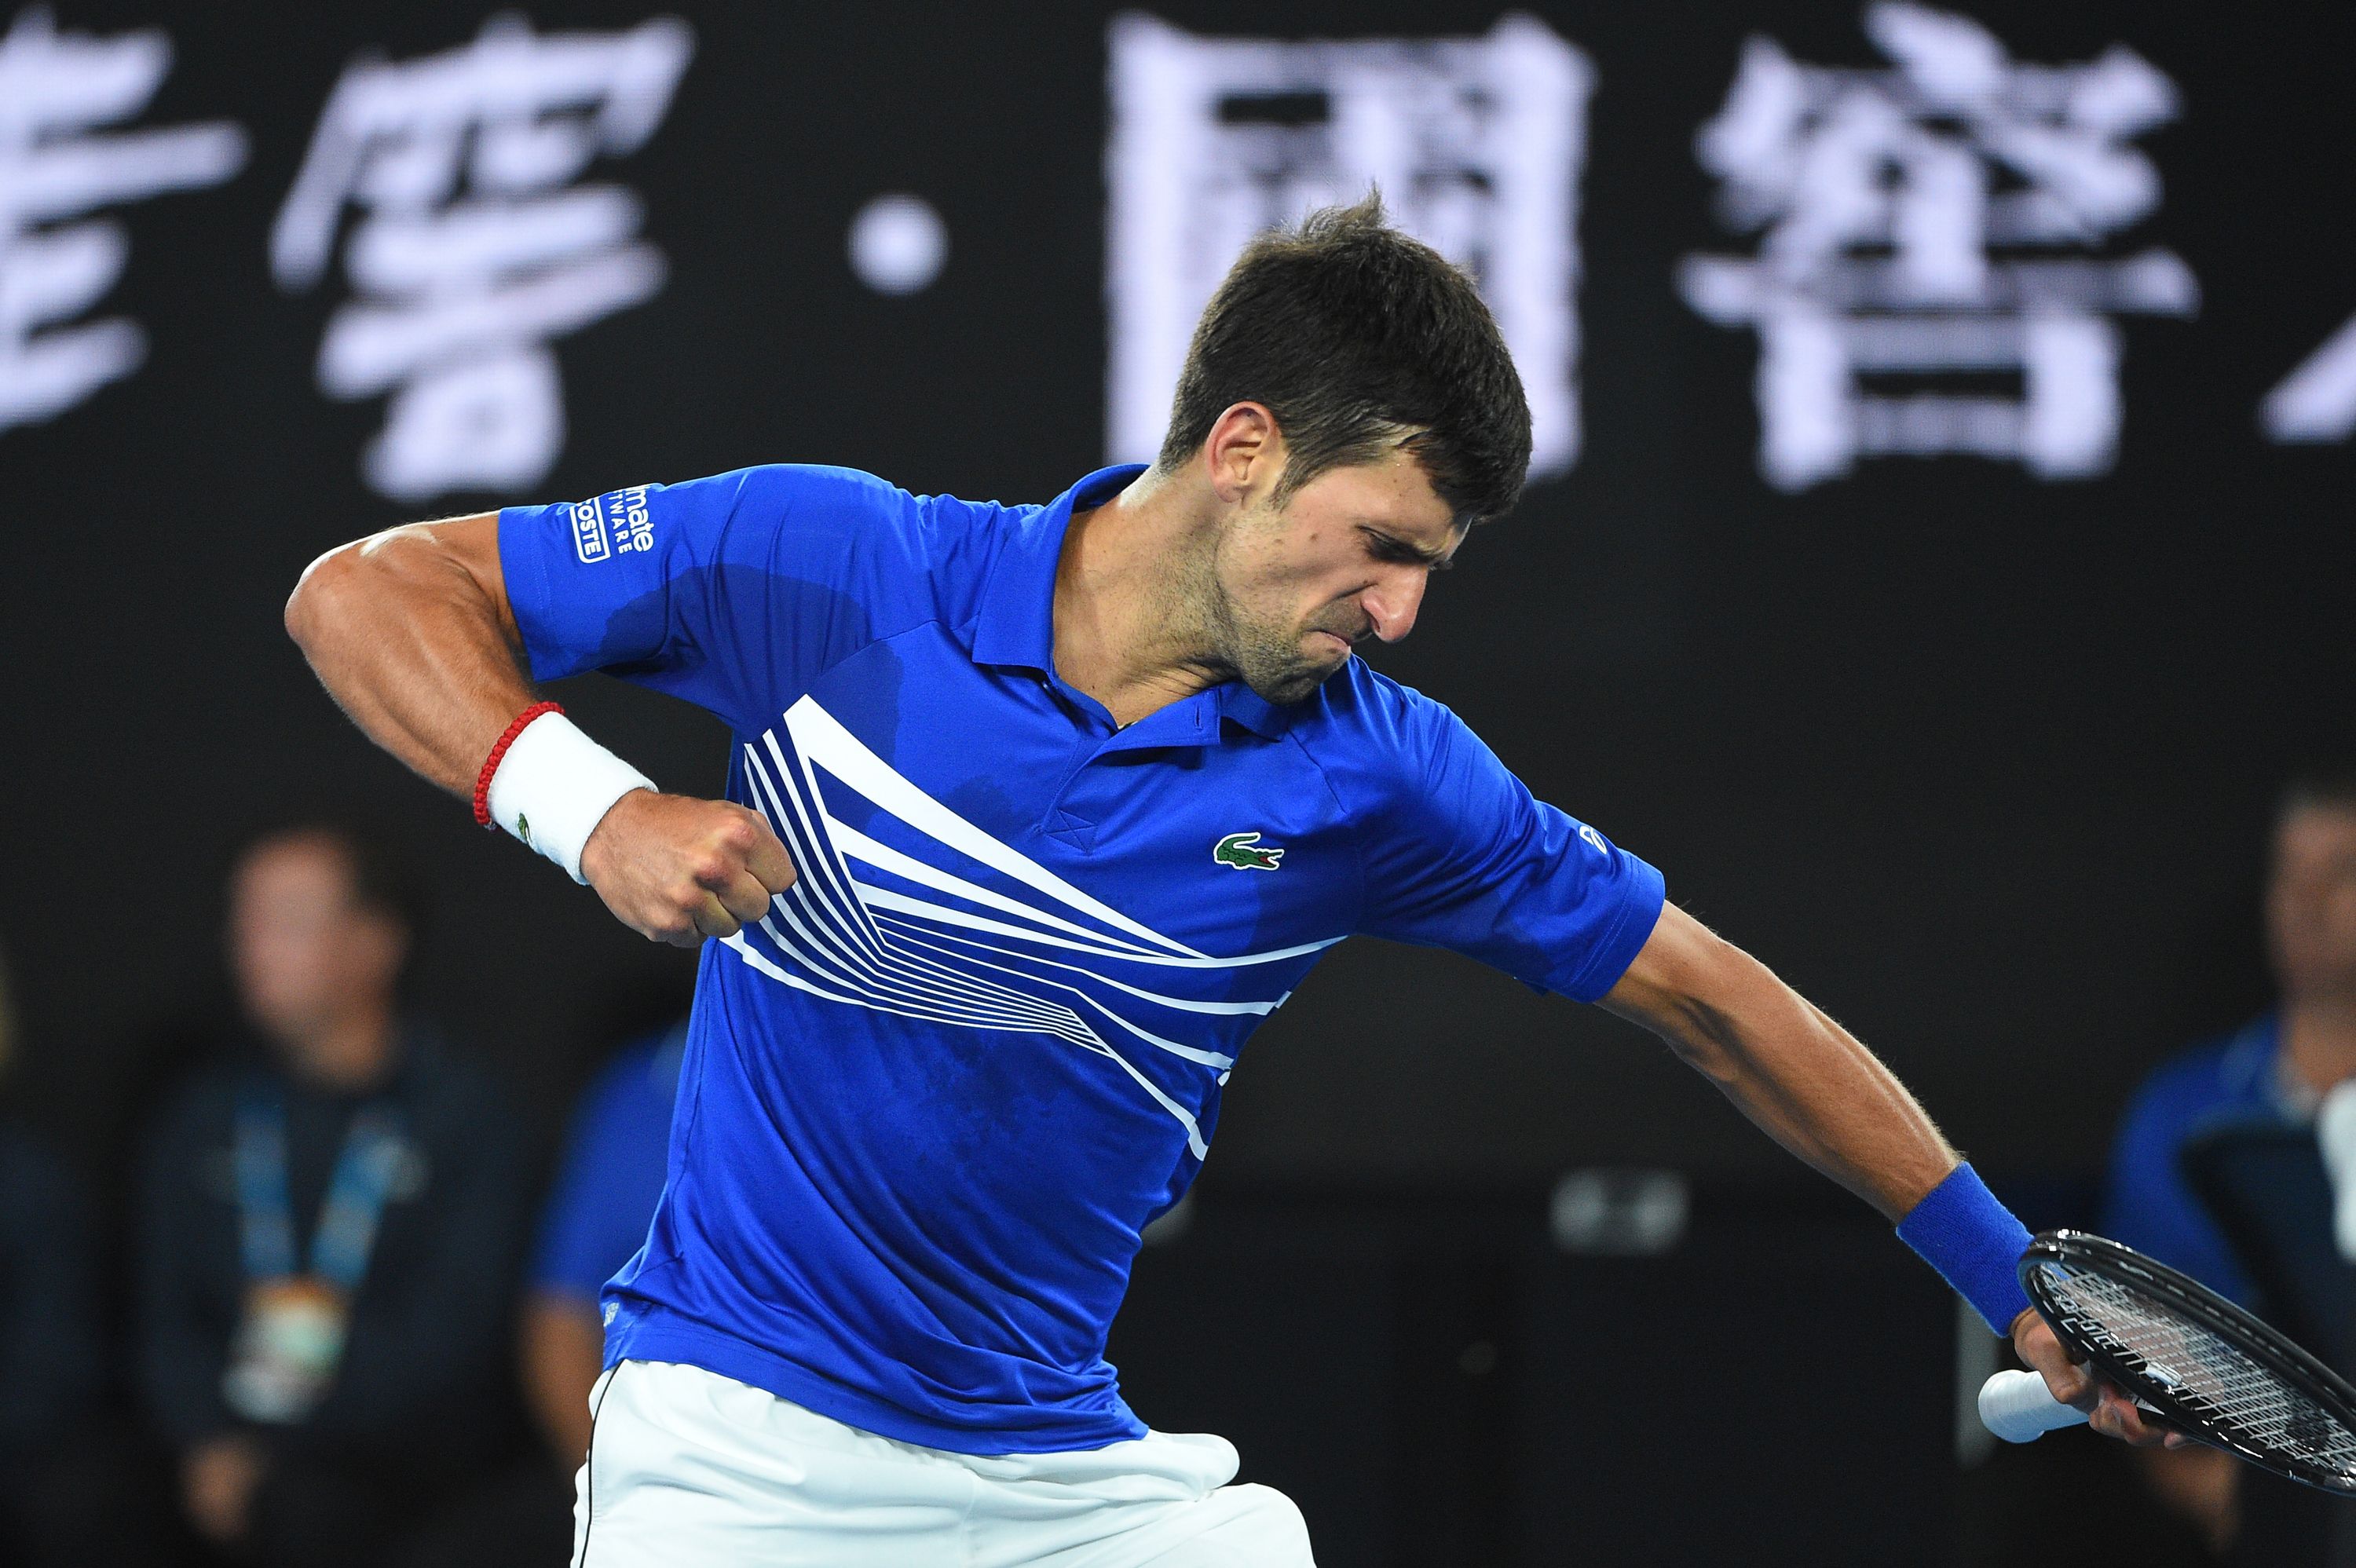 Novak Djokovic reaction at the 2019 Australian Open